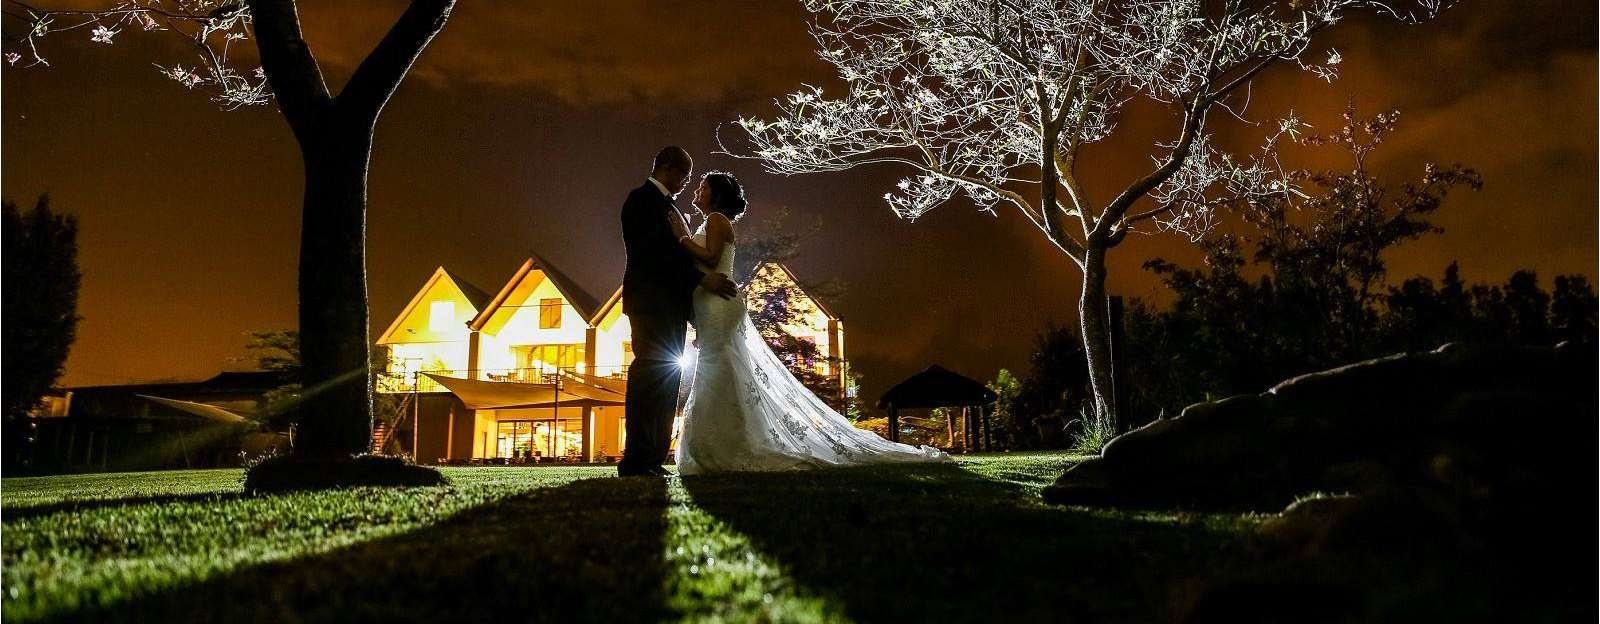 Hudsons Venue Weddings at night in the garden